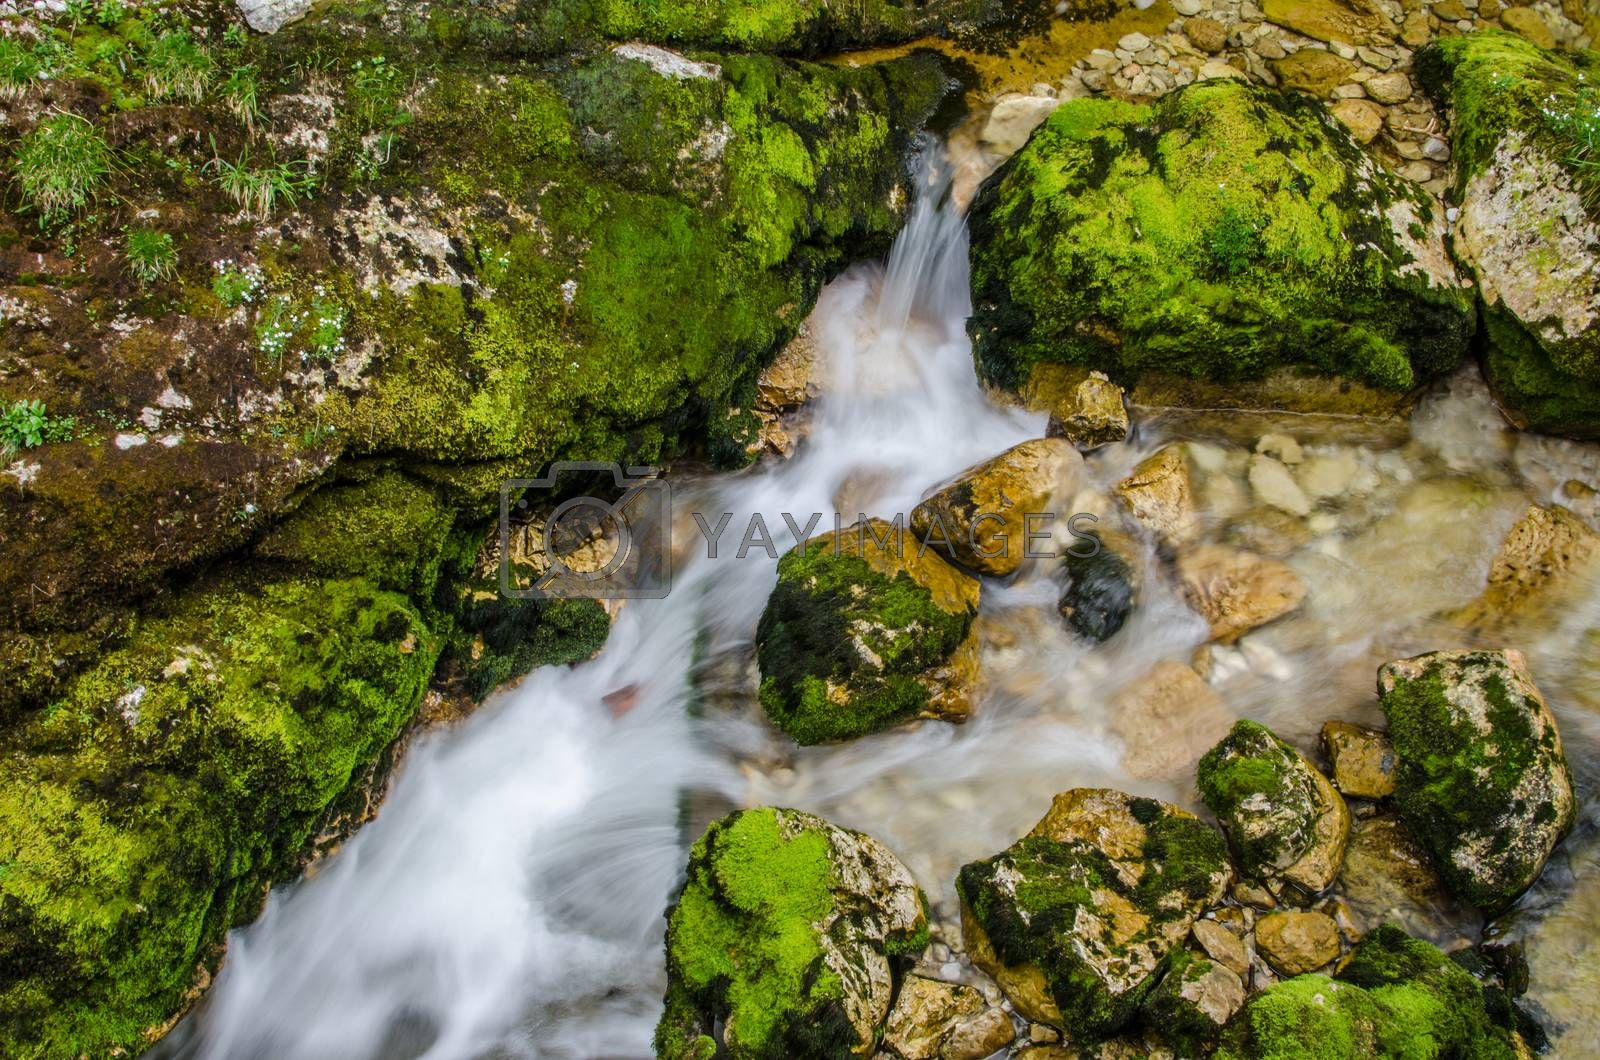 Royalty free image of fast water with rocks by thomaseder